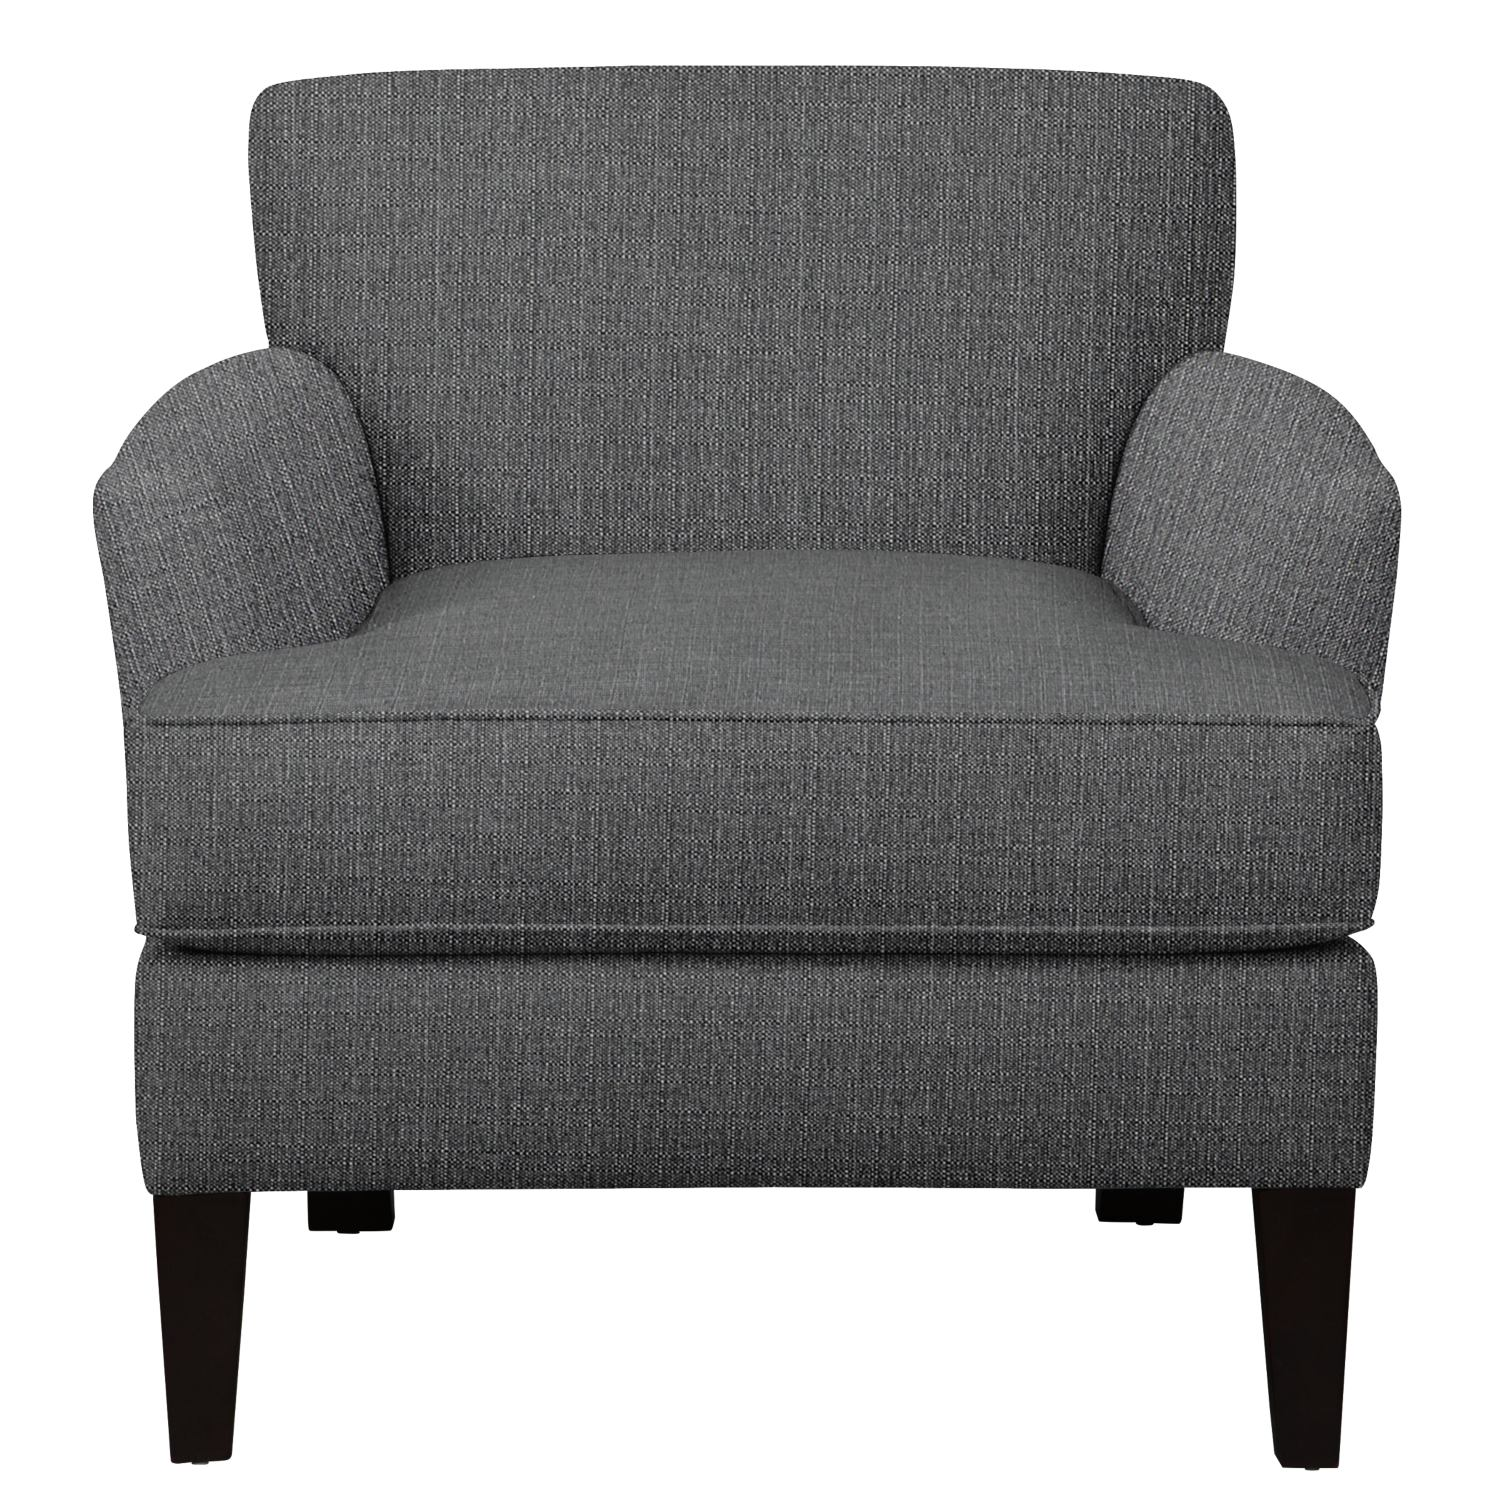 Living Room Furniture - Marcus Chair w/ Depalma Charcoal Fabric